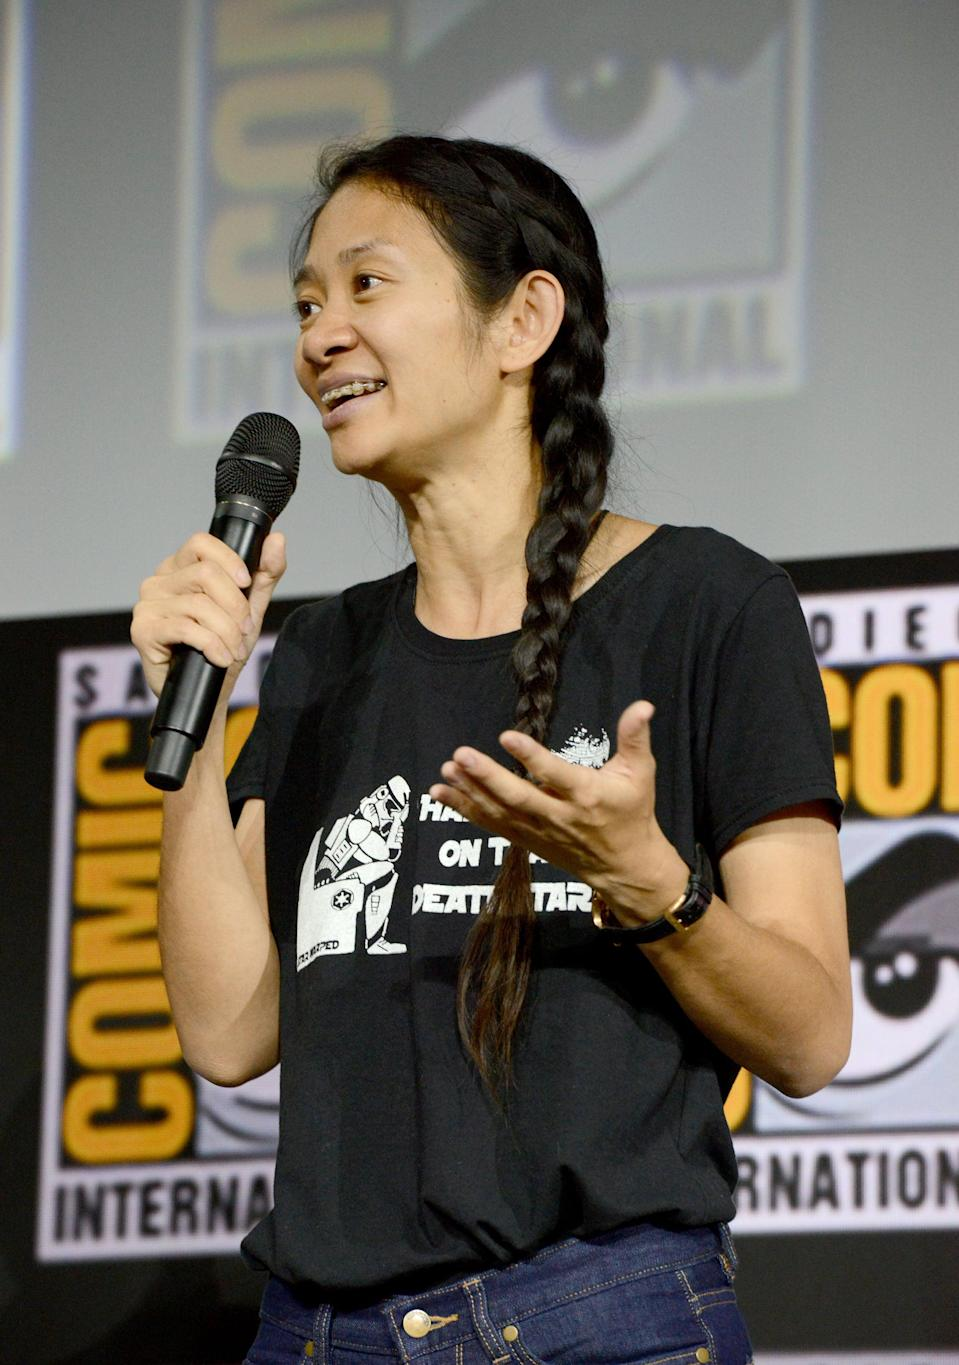 <p>Zhao is the director of the upcoming Marvel movie <strong>Eternals</strong>, focused on a group of immortal aliens who reunite to protect humanity from their evil foes. She'll be the third female director (and first woman of color) to helm a Marvel feature, following <strong>Captain Marvel</strong>'s Anna Boden and <strong>Black Widow</strong>'s Cate Shortland.</p>